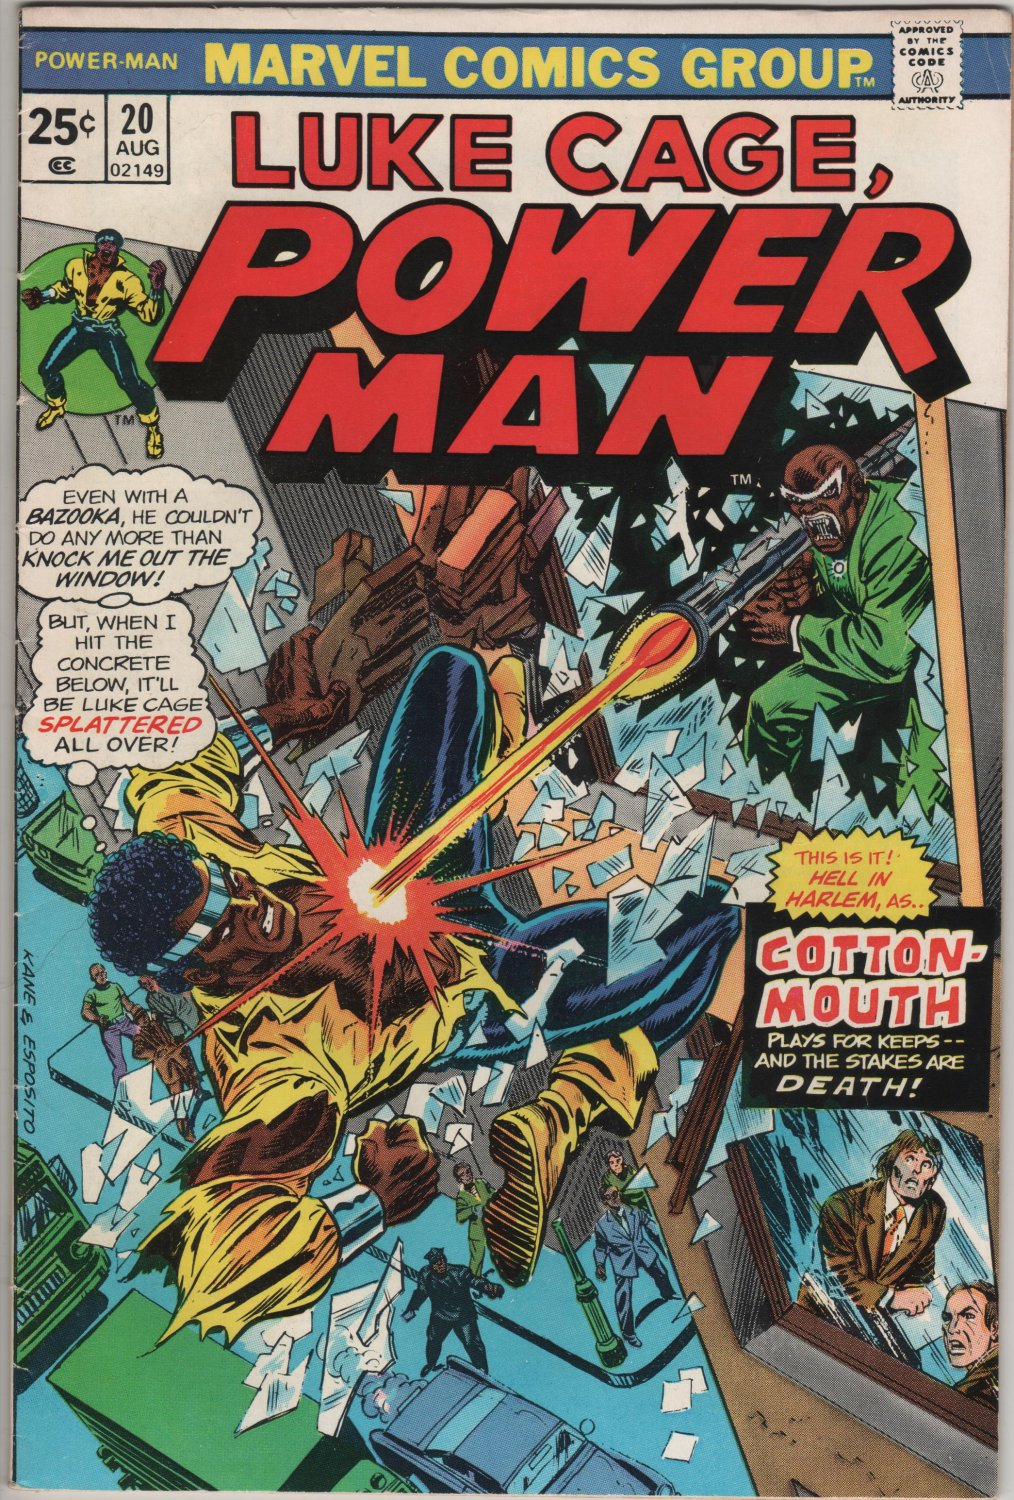 Luke Cage, Power Man #20 Cotton-Mouth, Hell in Harlem c.1973